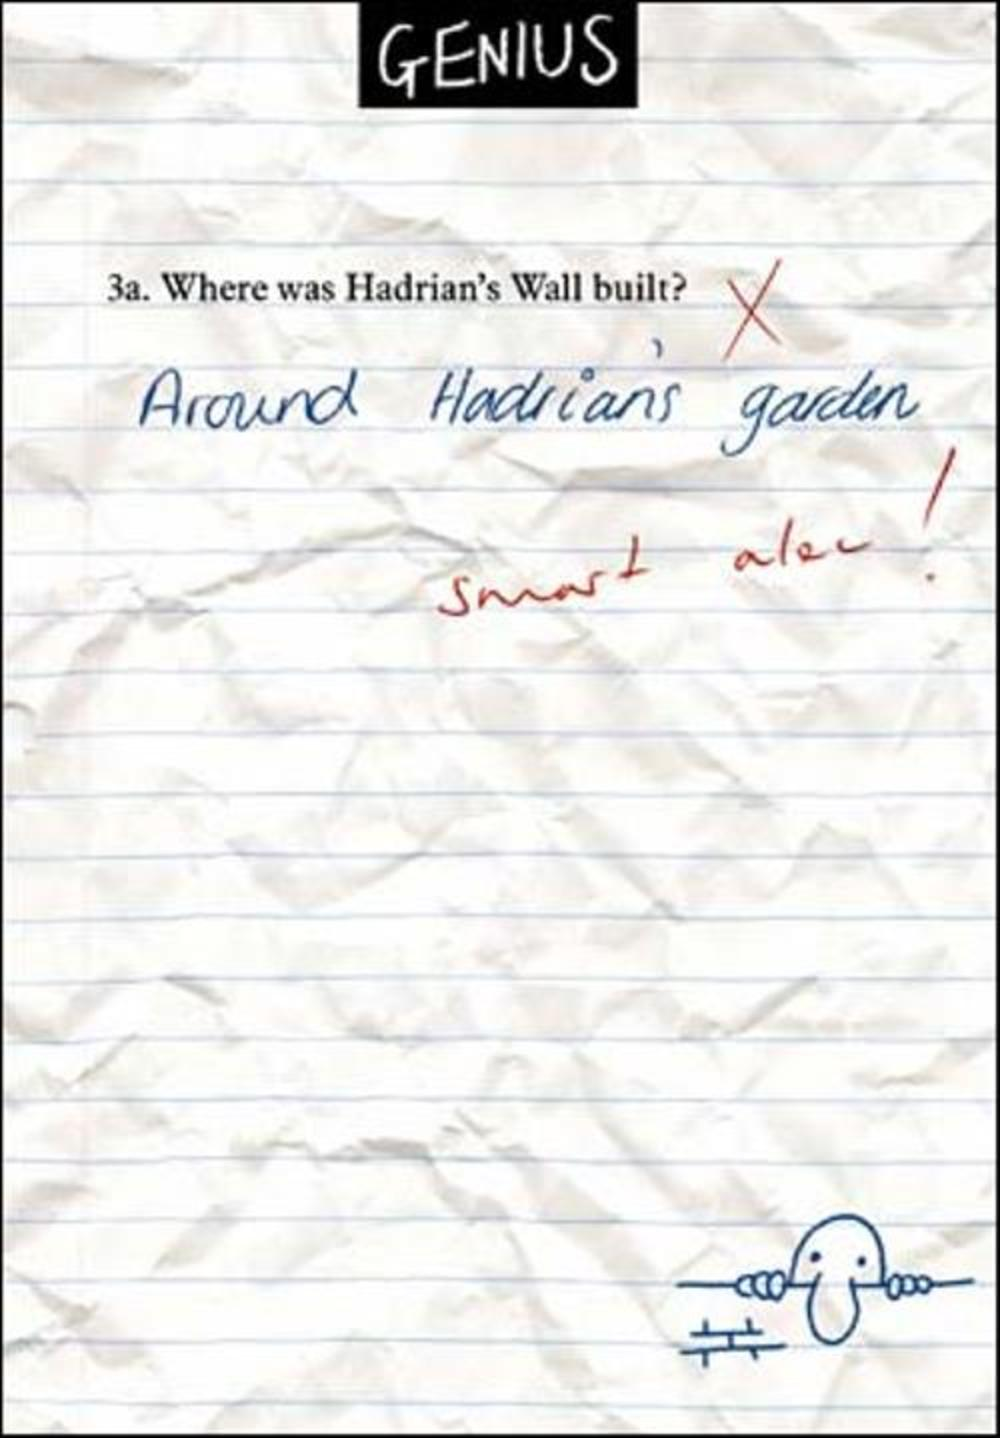 Hadrian's Wall Funny Genius Greeting Card